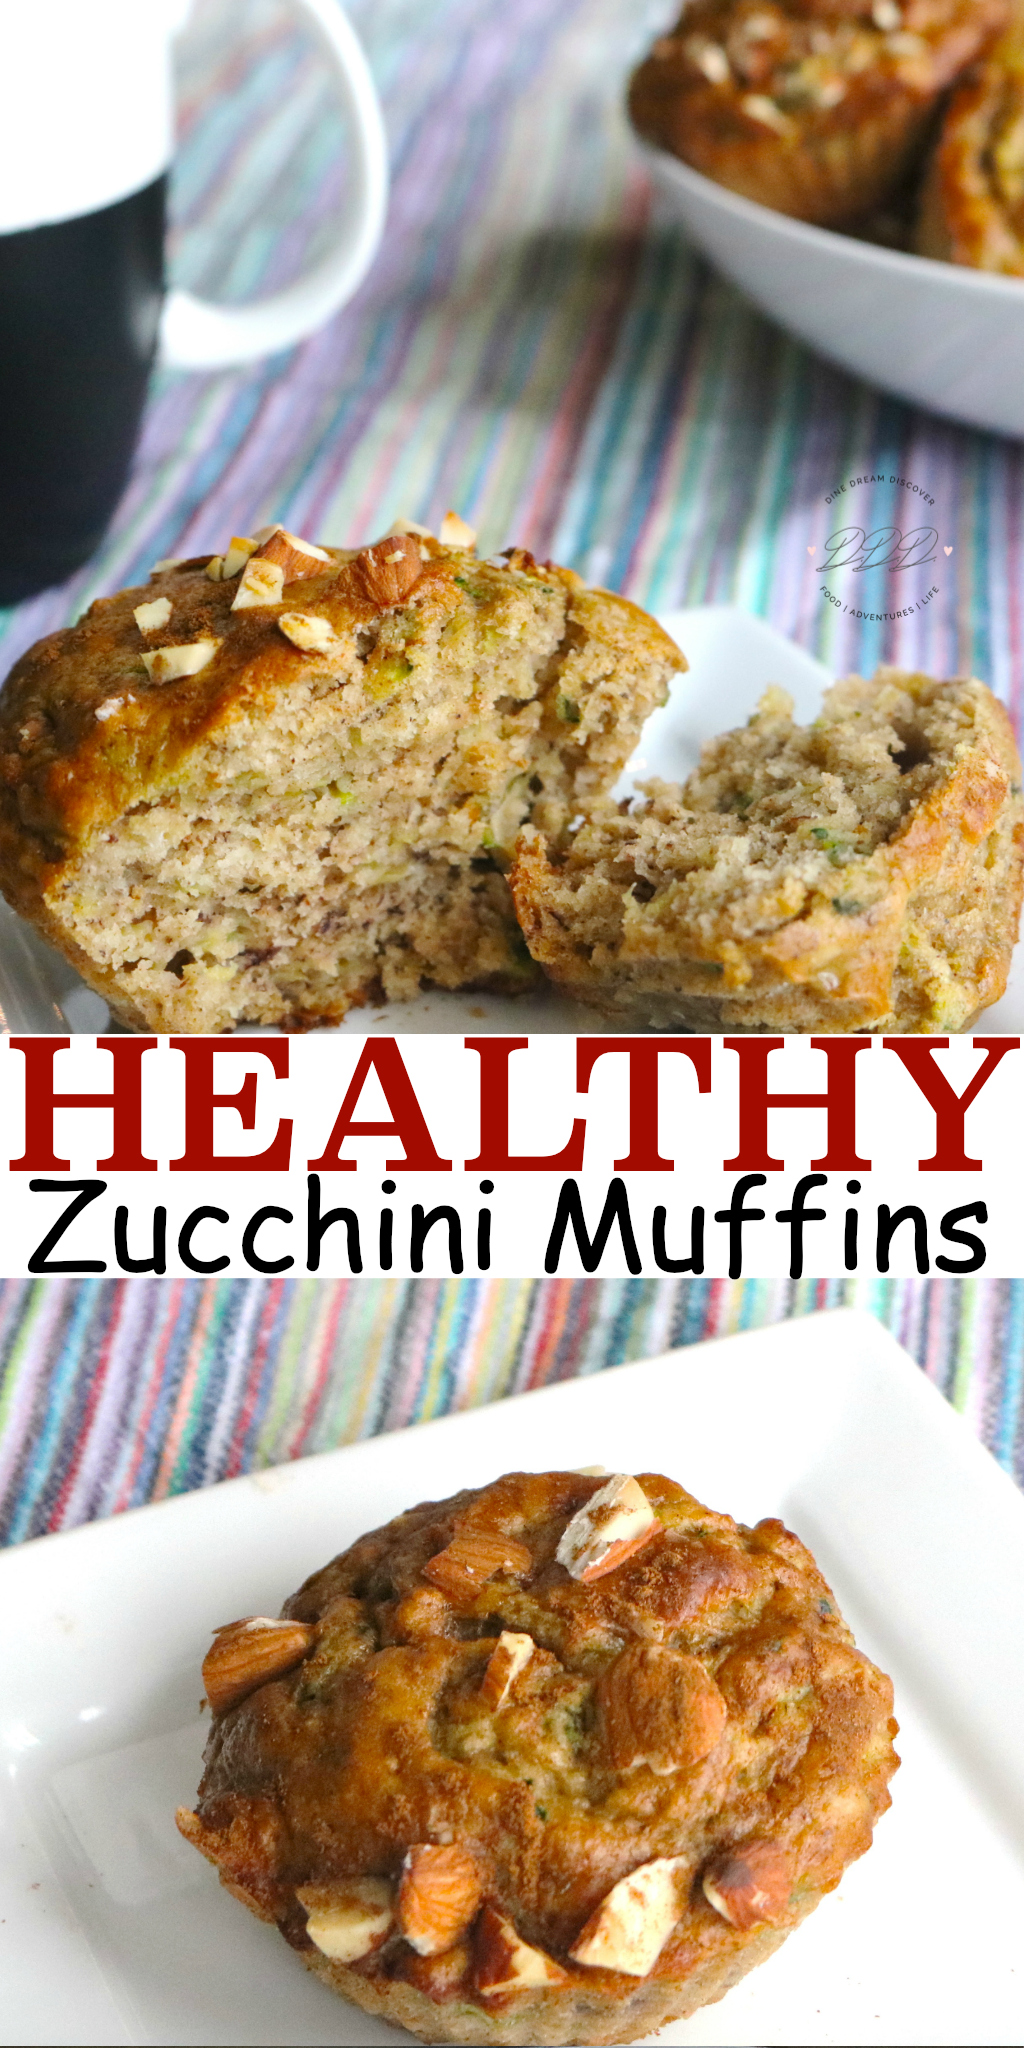 TheAlmond Banana Zucchini Muffins are healthy zucchini muffins made with almond meal which is similar to almond flour. These savory zucchini muffins are perfect for a grab-n-go breakfast.